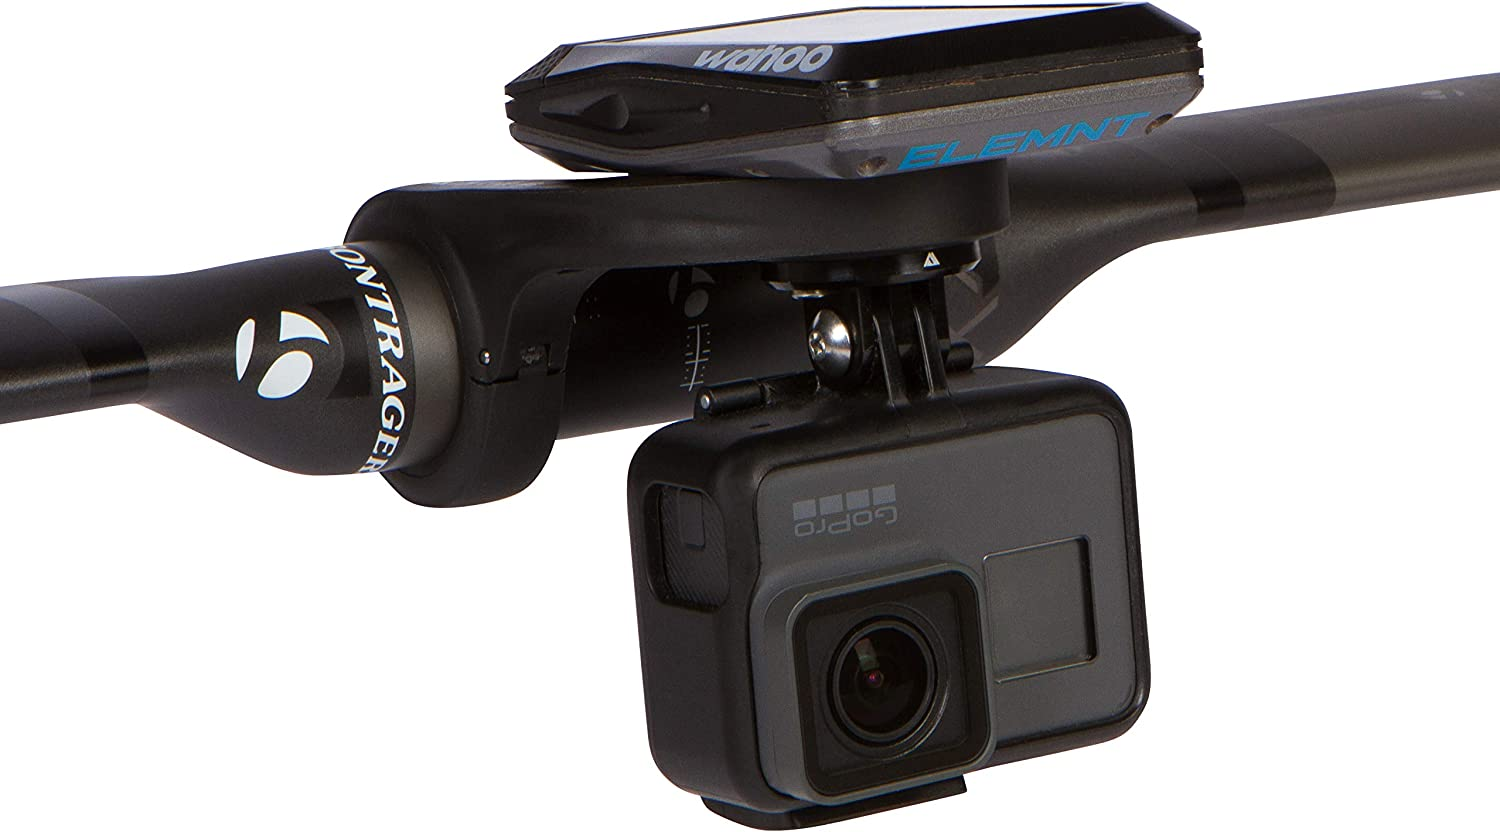 KOM Cycling GoPro Cycling Computer Mount Bundle Compatible with Wahoo Elemnt, Elemnt Mini, Bolt, and Most Garmin Edge Mounts - for GoPro Hero 7, Hero 6, Hero 5, Hero 4, 3+, 3, 2 and HD Cameras